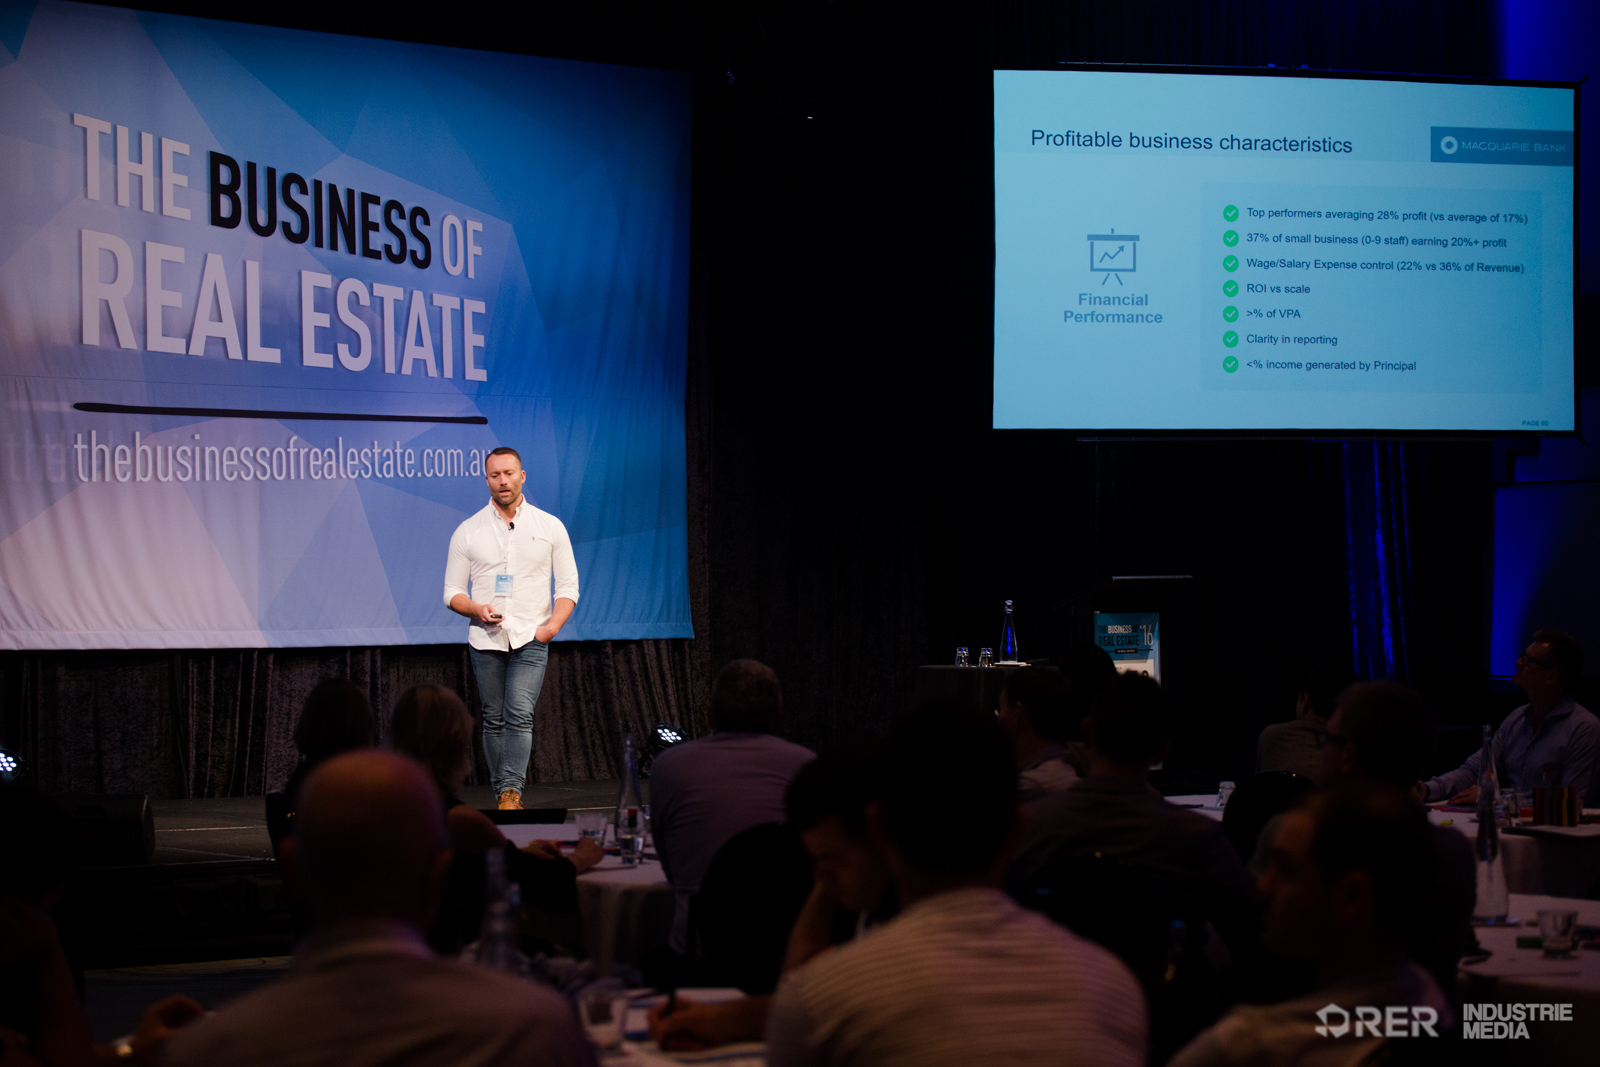 http://www.thebusinessofrealestate.com.au/wp-content/uploads/2016/09/RER_BUSINESS_OF_REAL_ESTATE_DAY_2-54.jpg